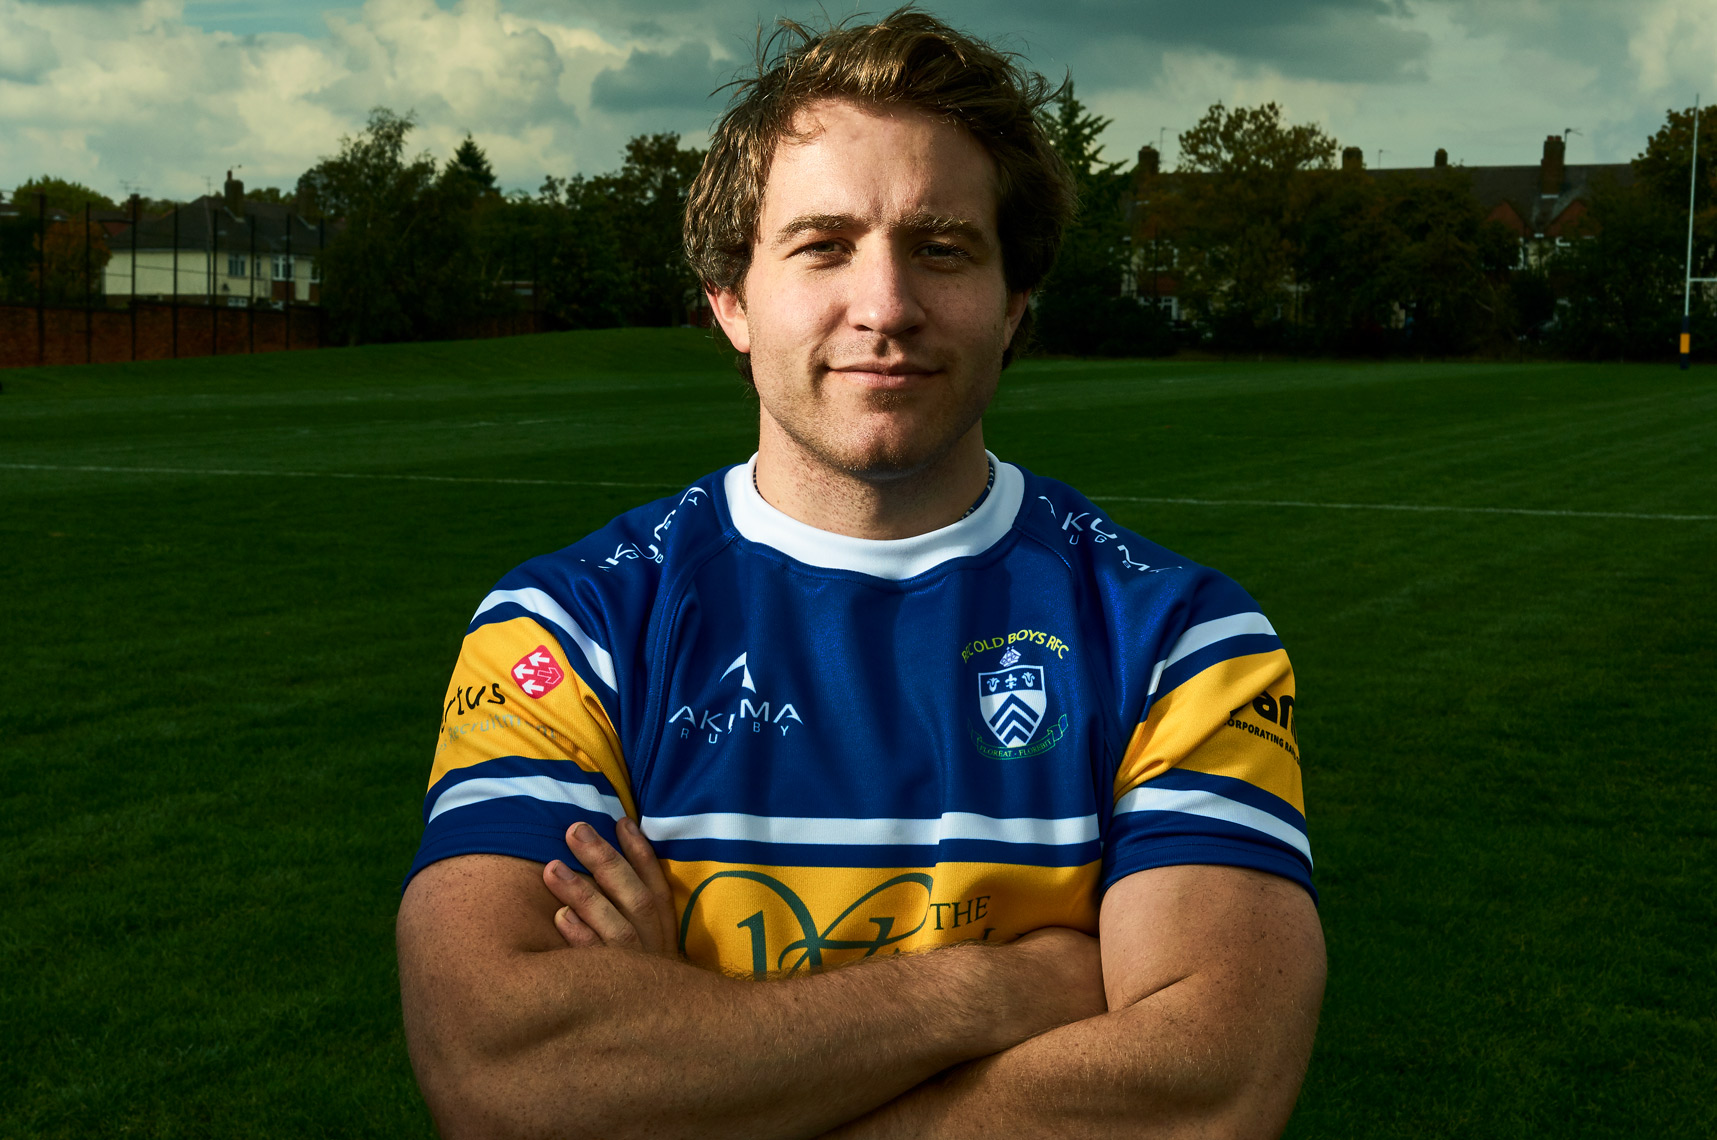 BEC Old Boys RFC - Giles Kernick